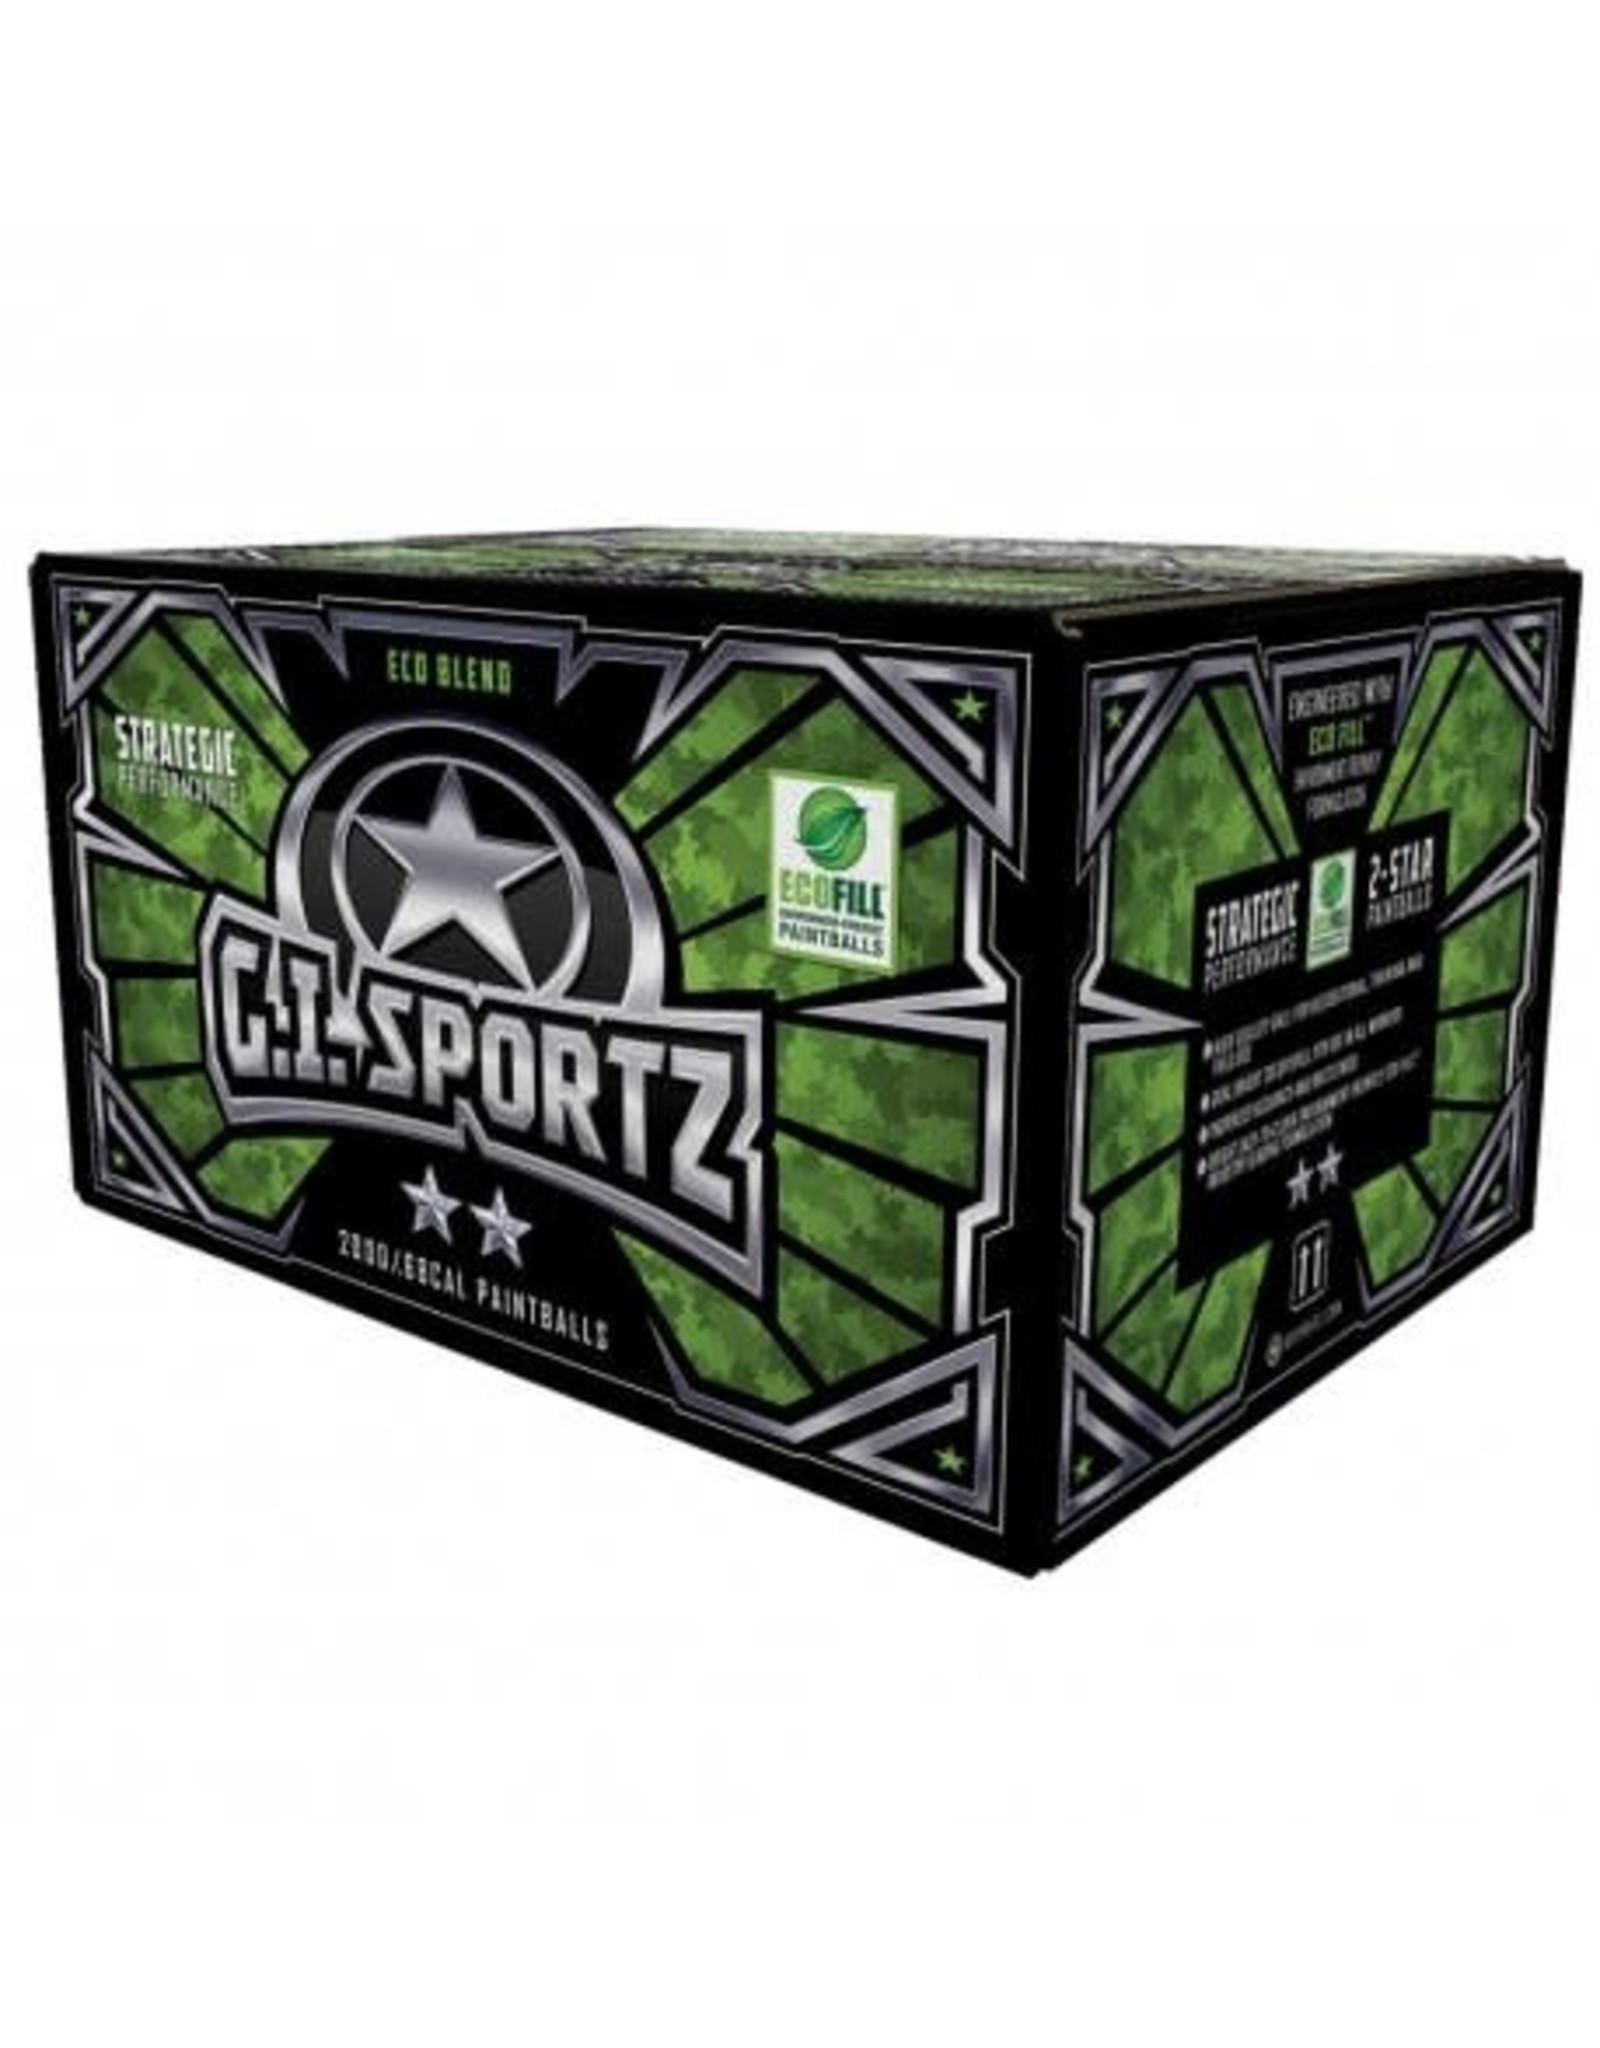 GI Sportz GI Sportz 2-Star Paintballs - 500ct